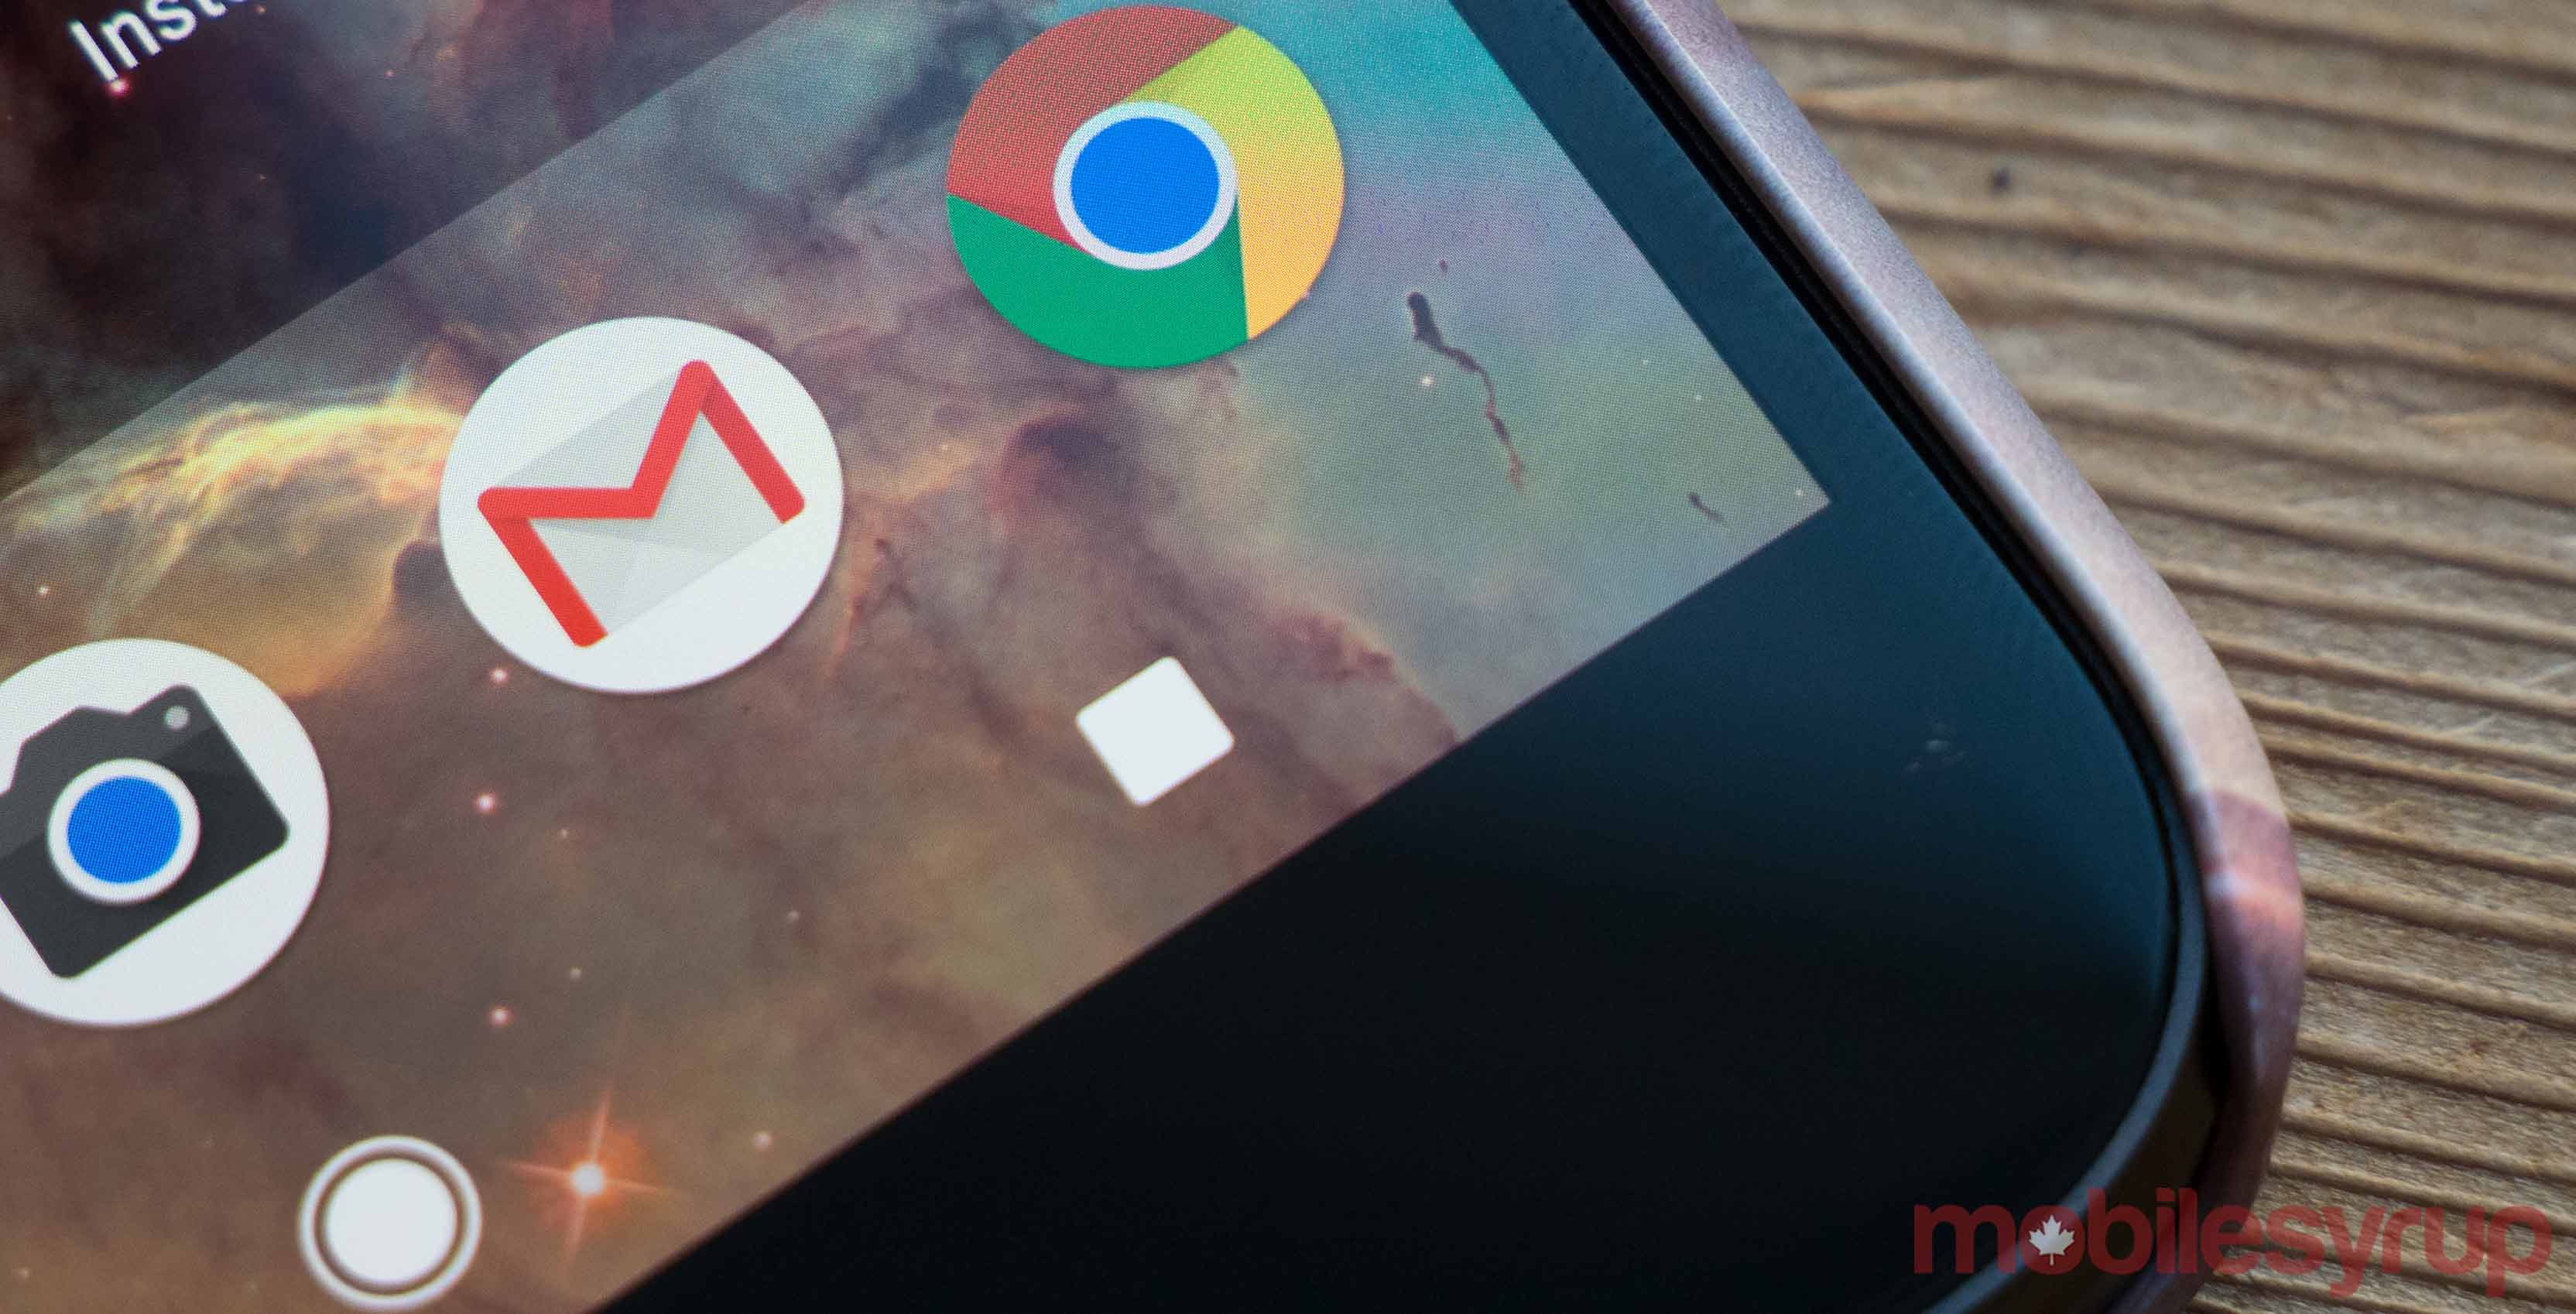 Chrome 77 beta preps new welcome screen, New Tab page customization